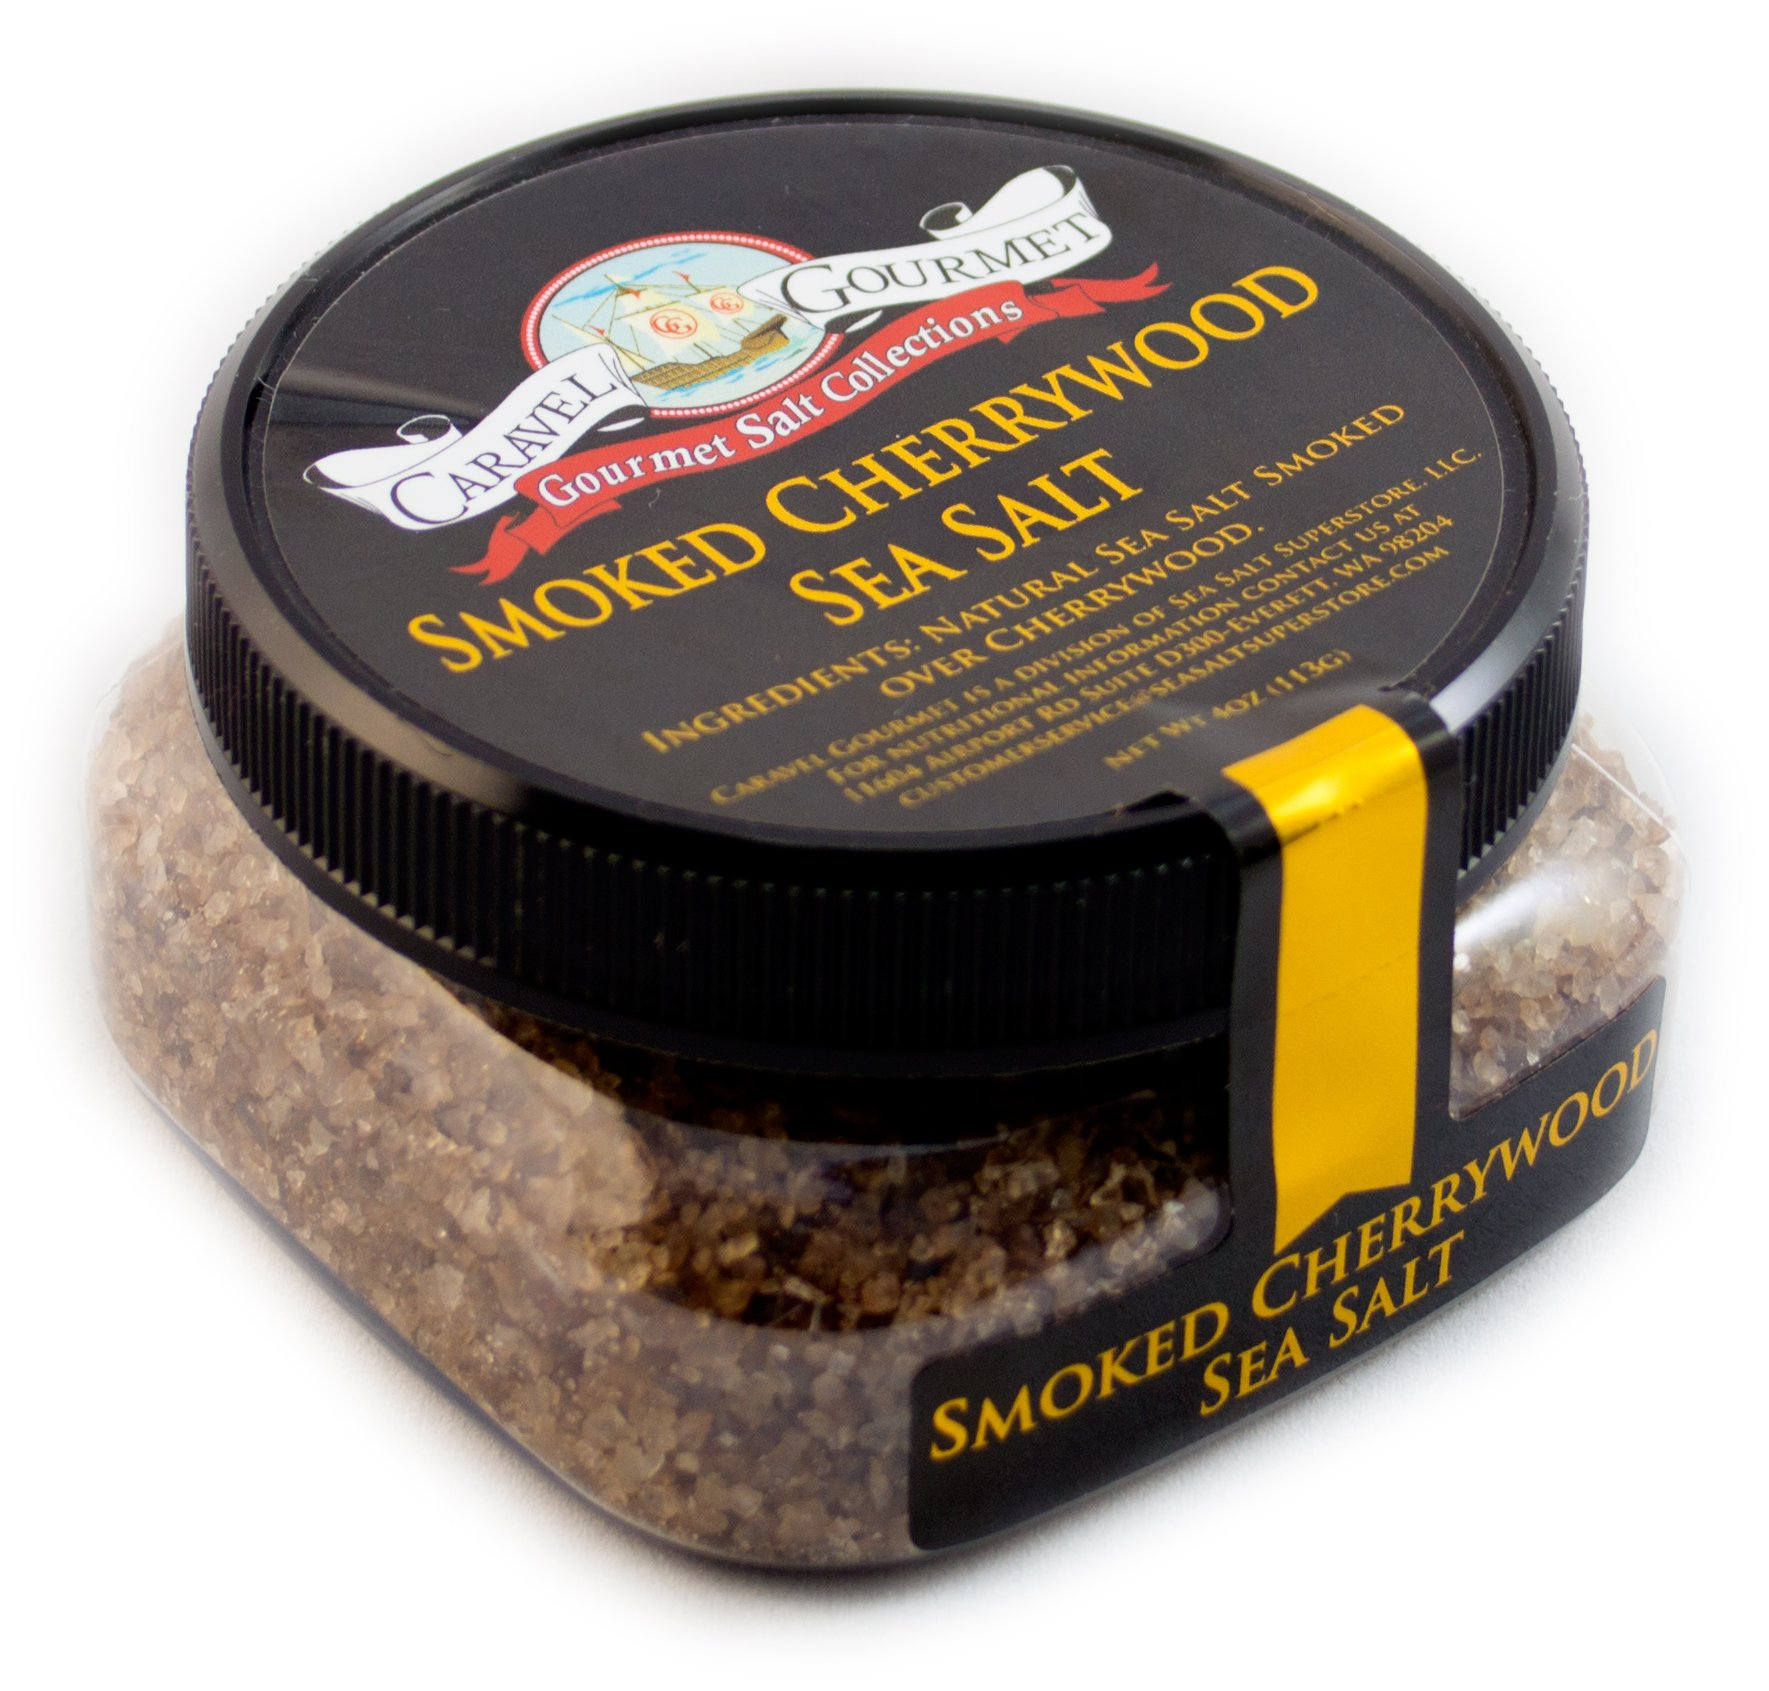 Smoked Cherrywood Fine Sea Salt - All-Natural Sea Salt Slowly Smoked for Perfect Smoky Flavor - No Gluten, No MSG, Non-GMO, Kosher - Cooking or Finishing Salt - 4 oz. Stackable Jar